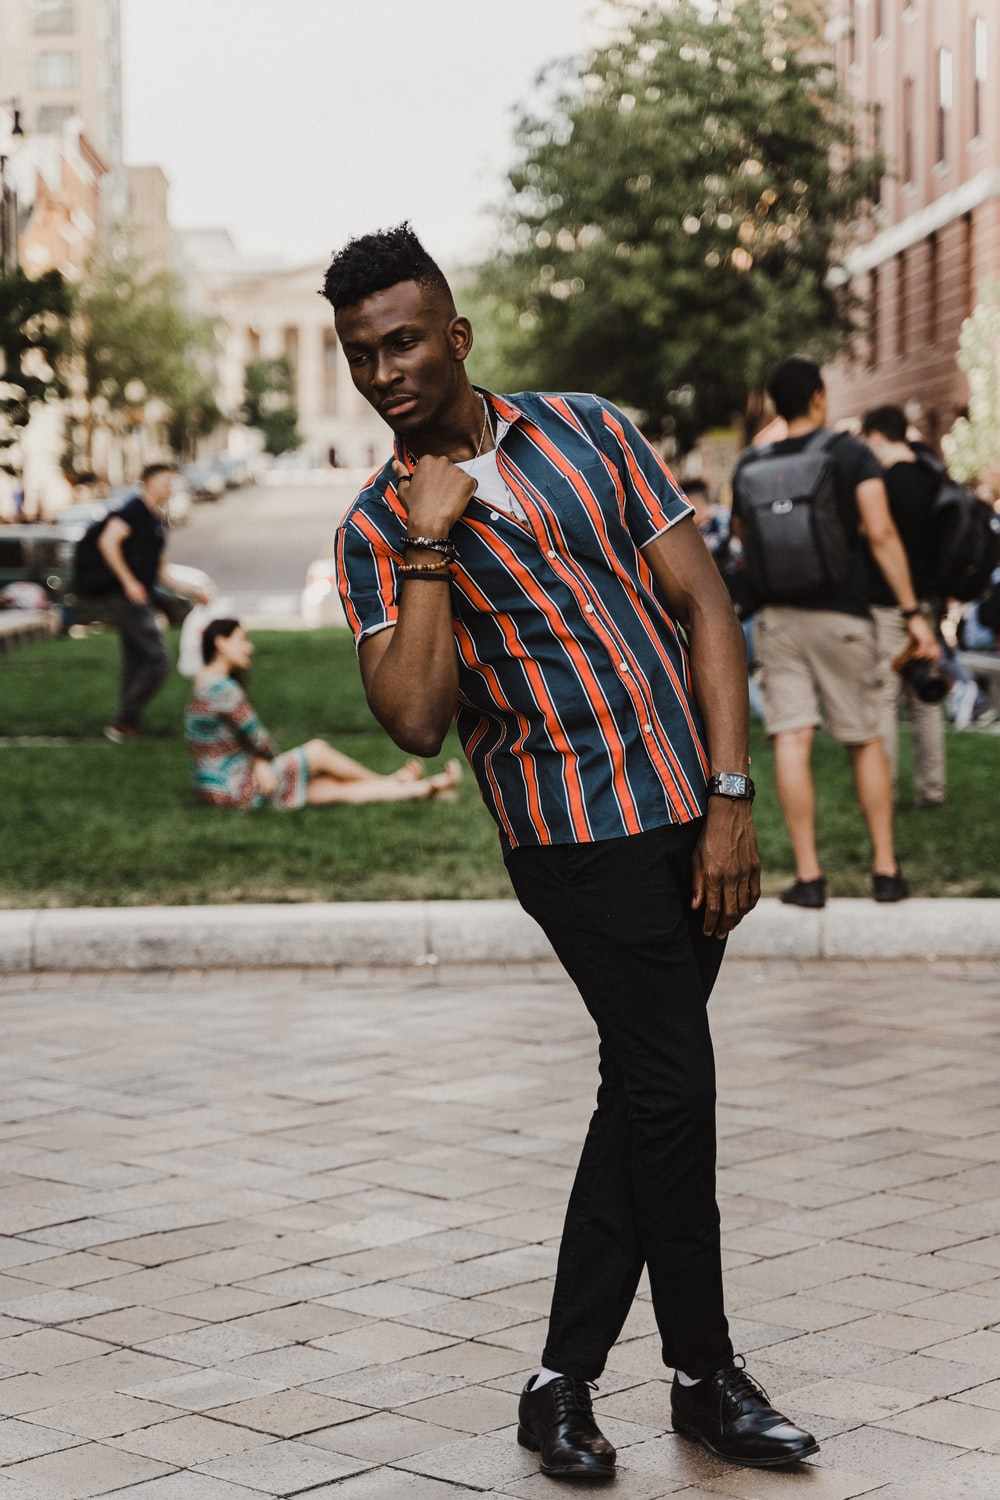 man wearing blue and red striped shirt